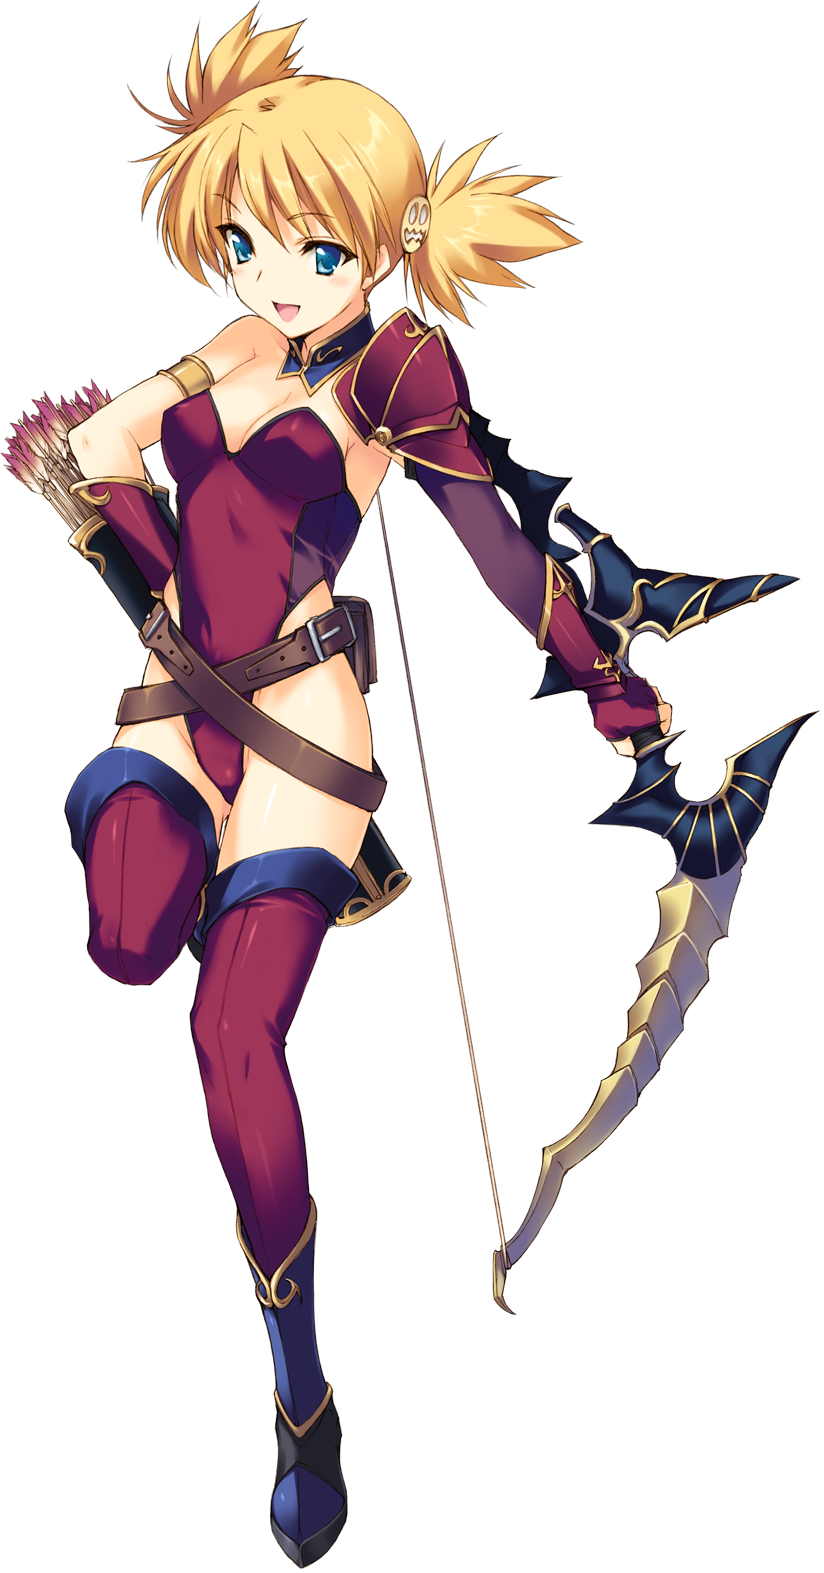 1girl :d aqua_eyes armlet armor arrow belt blonde_hair boots bow_(weapon) breasts cleavage detached_collar female fingerless_gloves full_body gloves hair_ornament hand_on_hip highres holding holding_weapon kawata_hisashi leotard medium_breasts multiple_belts open_mouth purple_leotard quiver sasamori_karin short_hair shoulder_armor smile solo standing_on_one_leg strapless strapless_leotard thigh-highs to_heart_2 to_heart_2_dungeon_travelers transparent_background twintails weapon